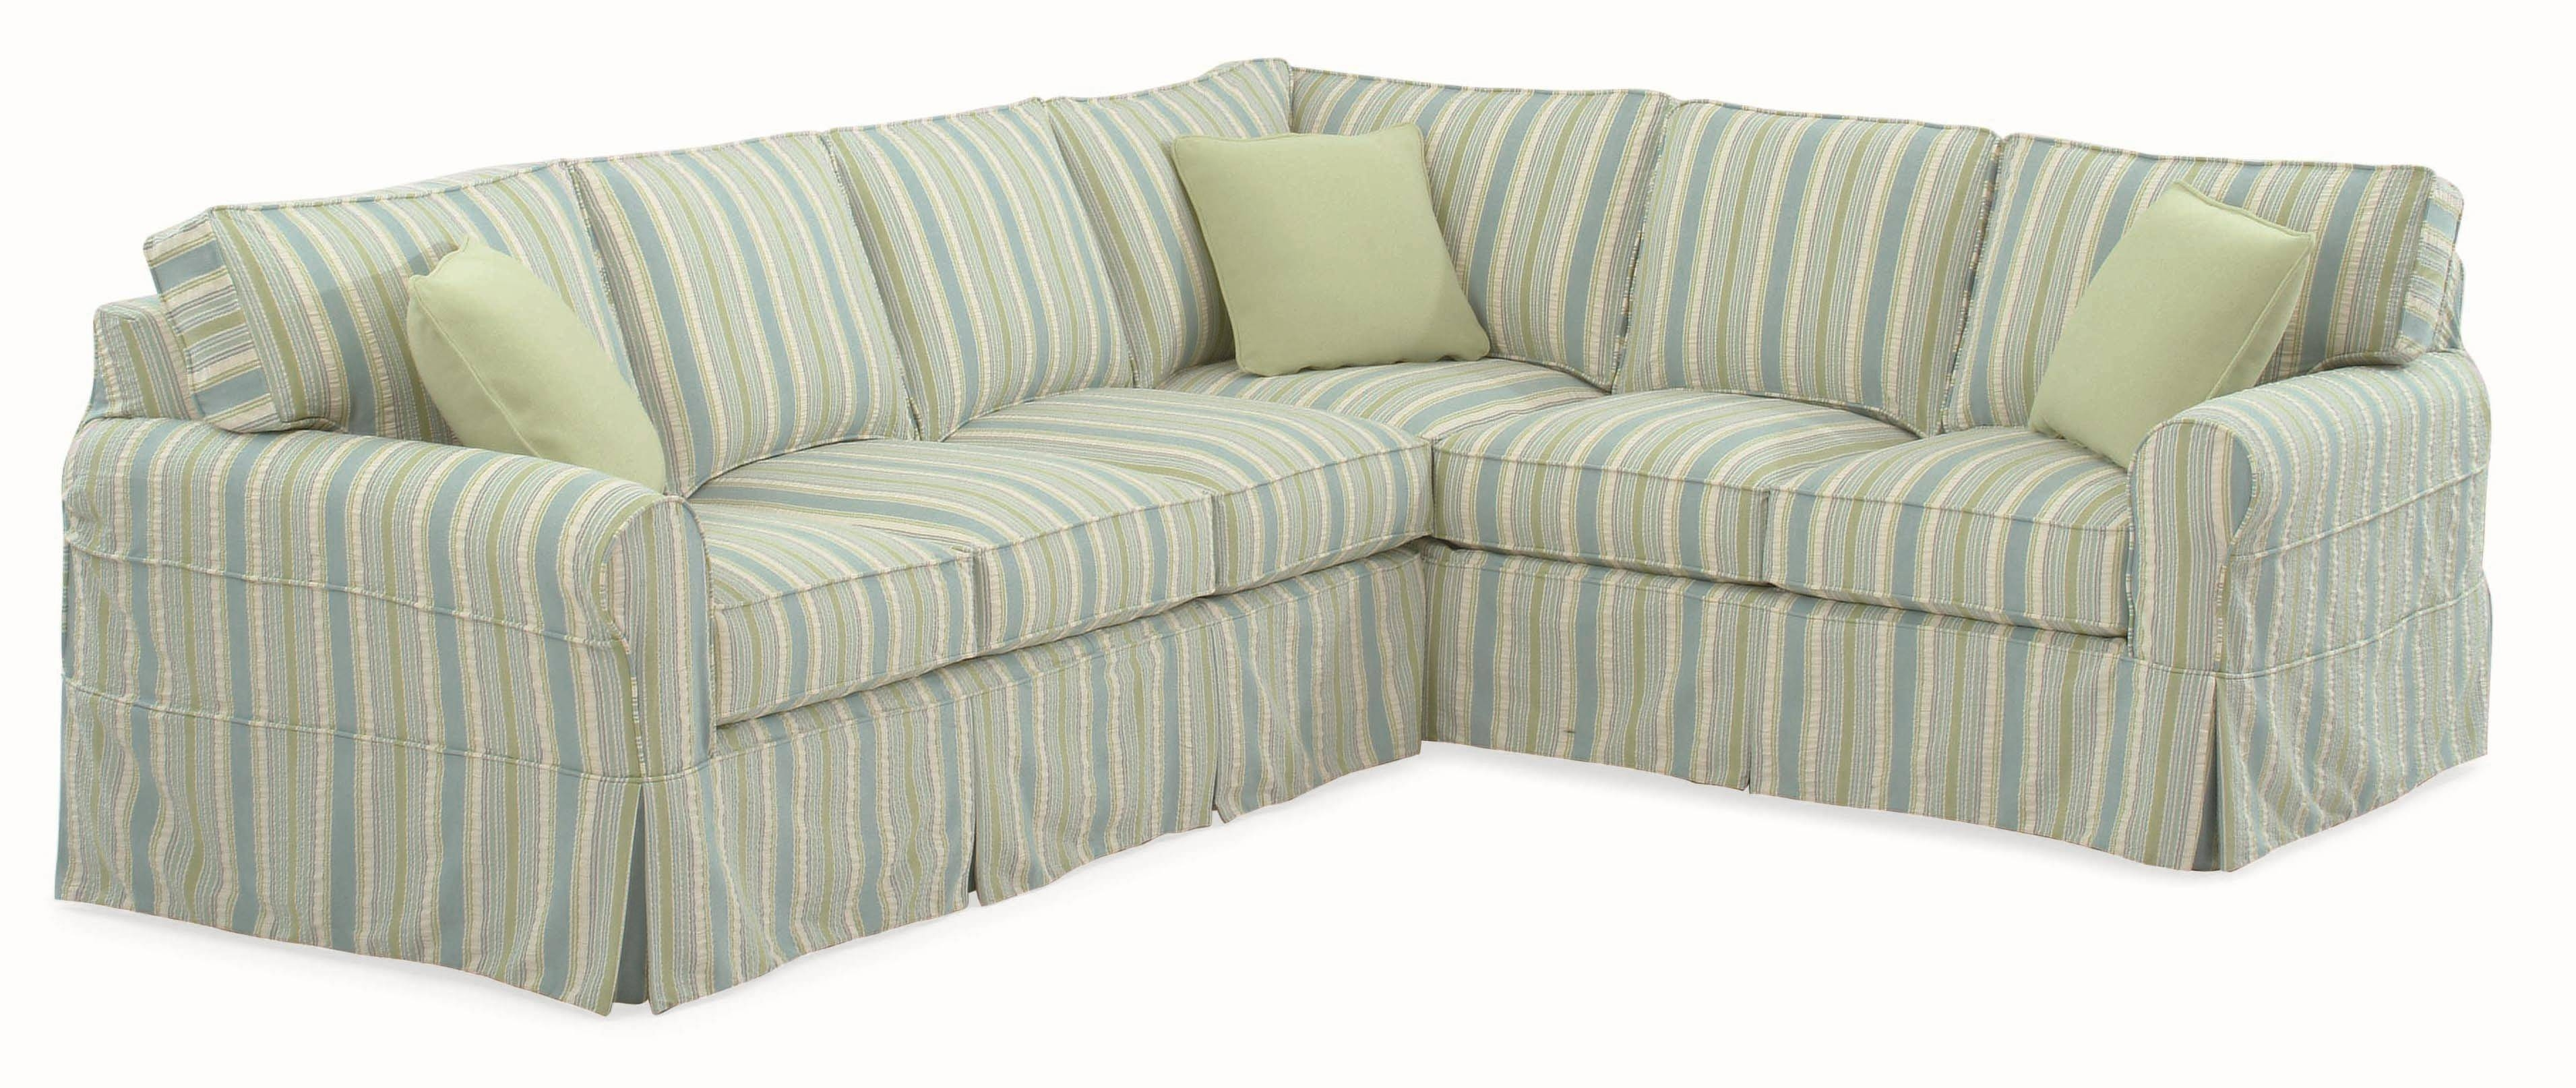 30 Best Eco Friendly Sectional Sofa